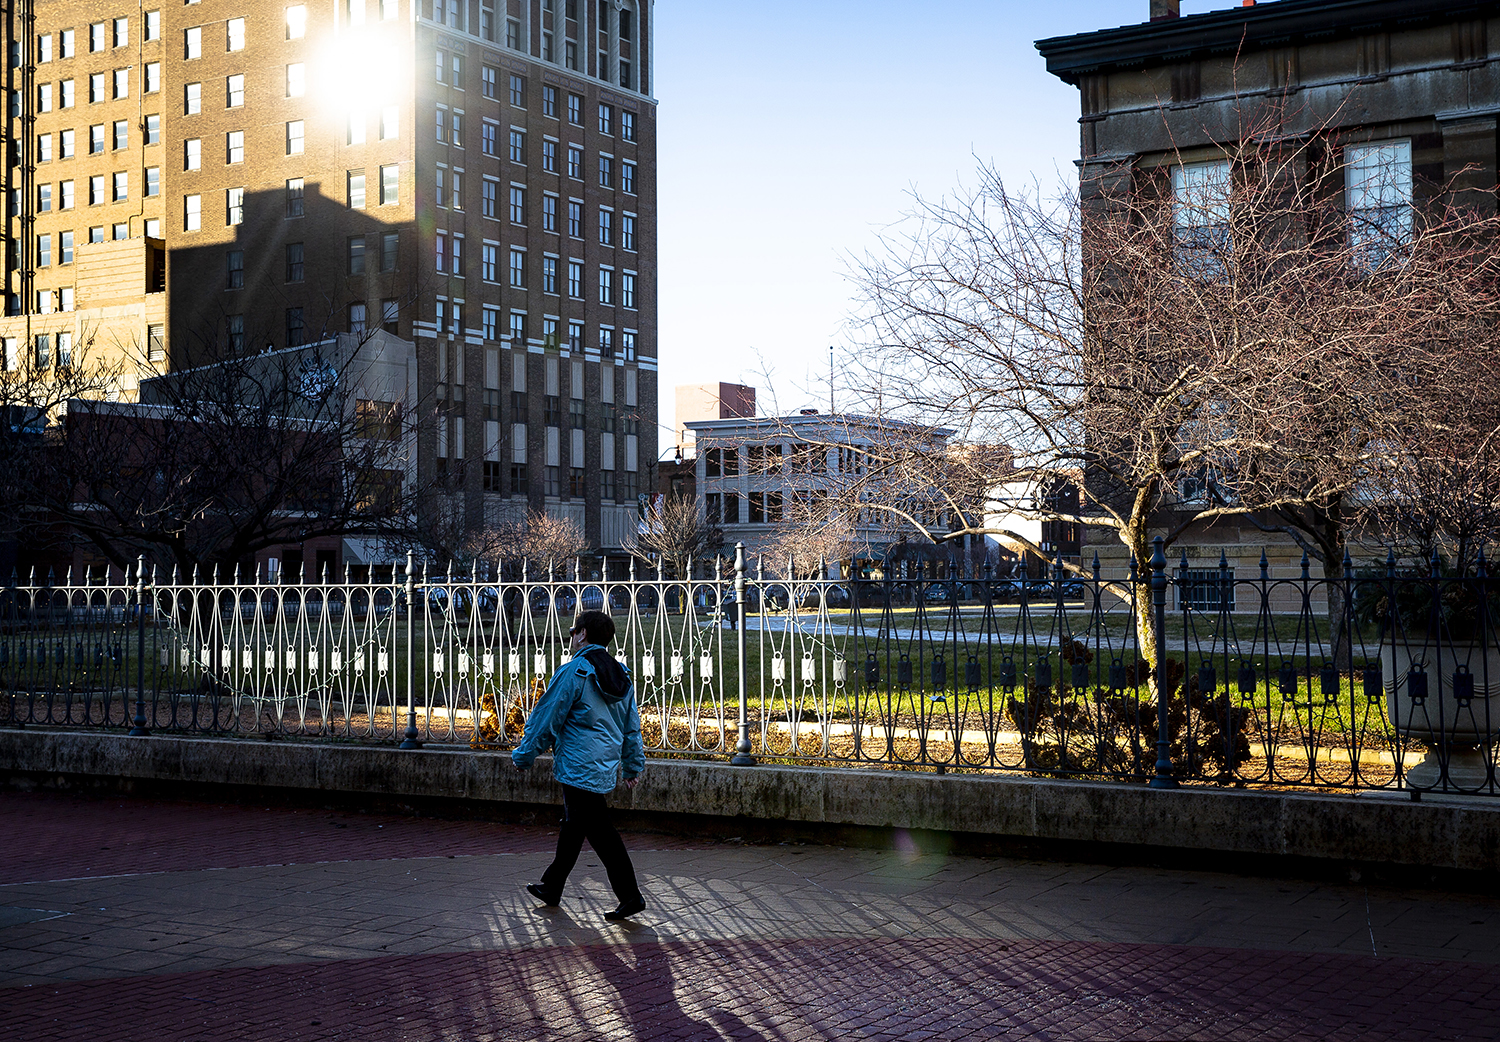 Brilliant sunshine on the Old Capitol Plaza and a temperature that reached 60 degrees made a January day feel briefly like spring for people who were able to get outside Monday, Jan. 7, 2019 in Springfield, Ill. Wednesday is a different story, however, when the high temperature isn't expected to break freezing. [Rich Saal/The State Journal-Register]